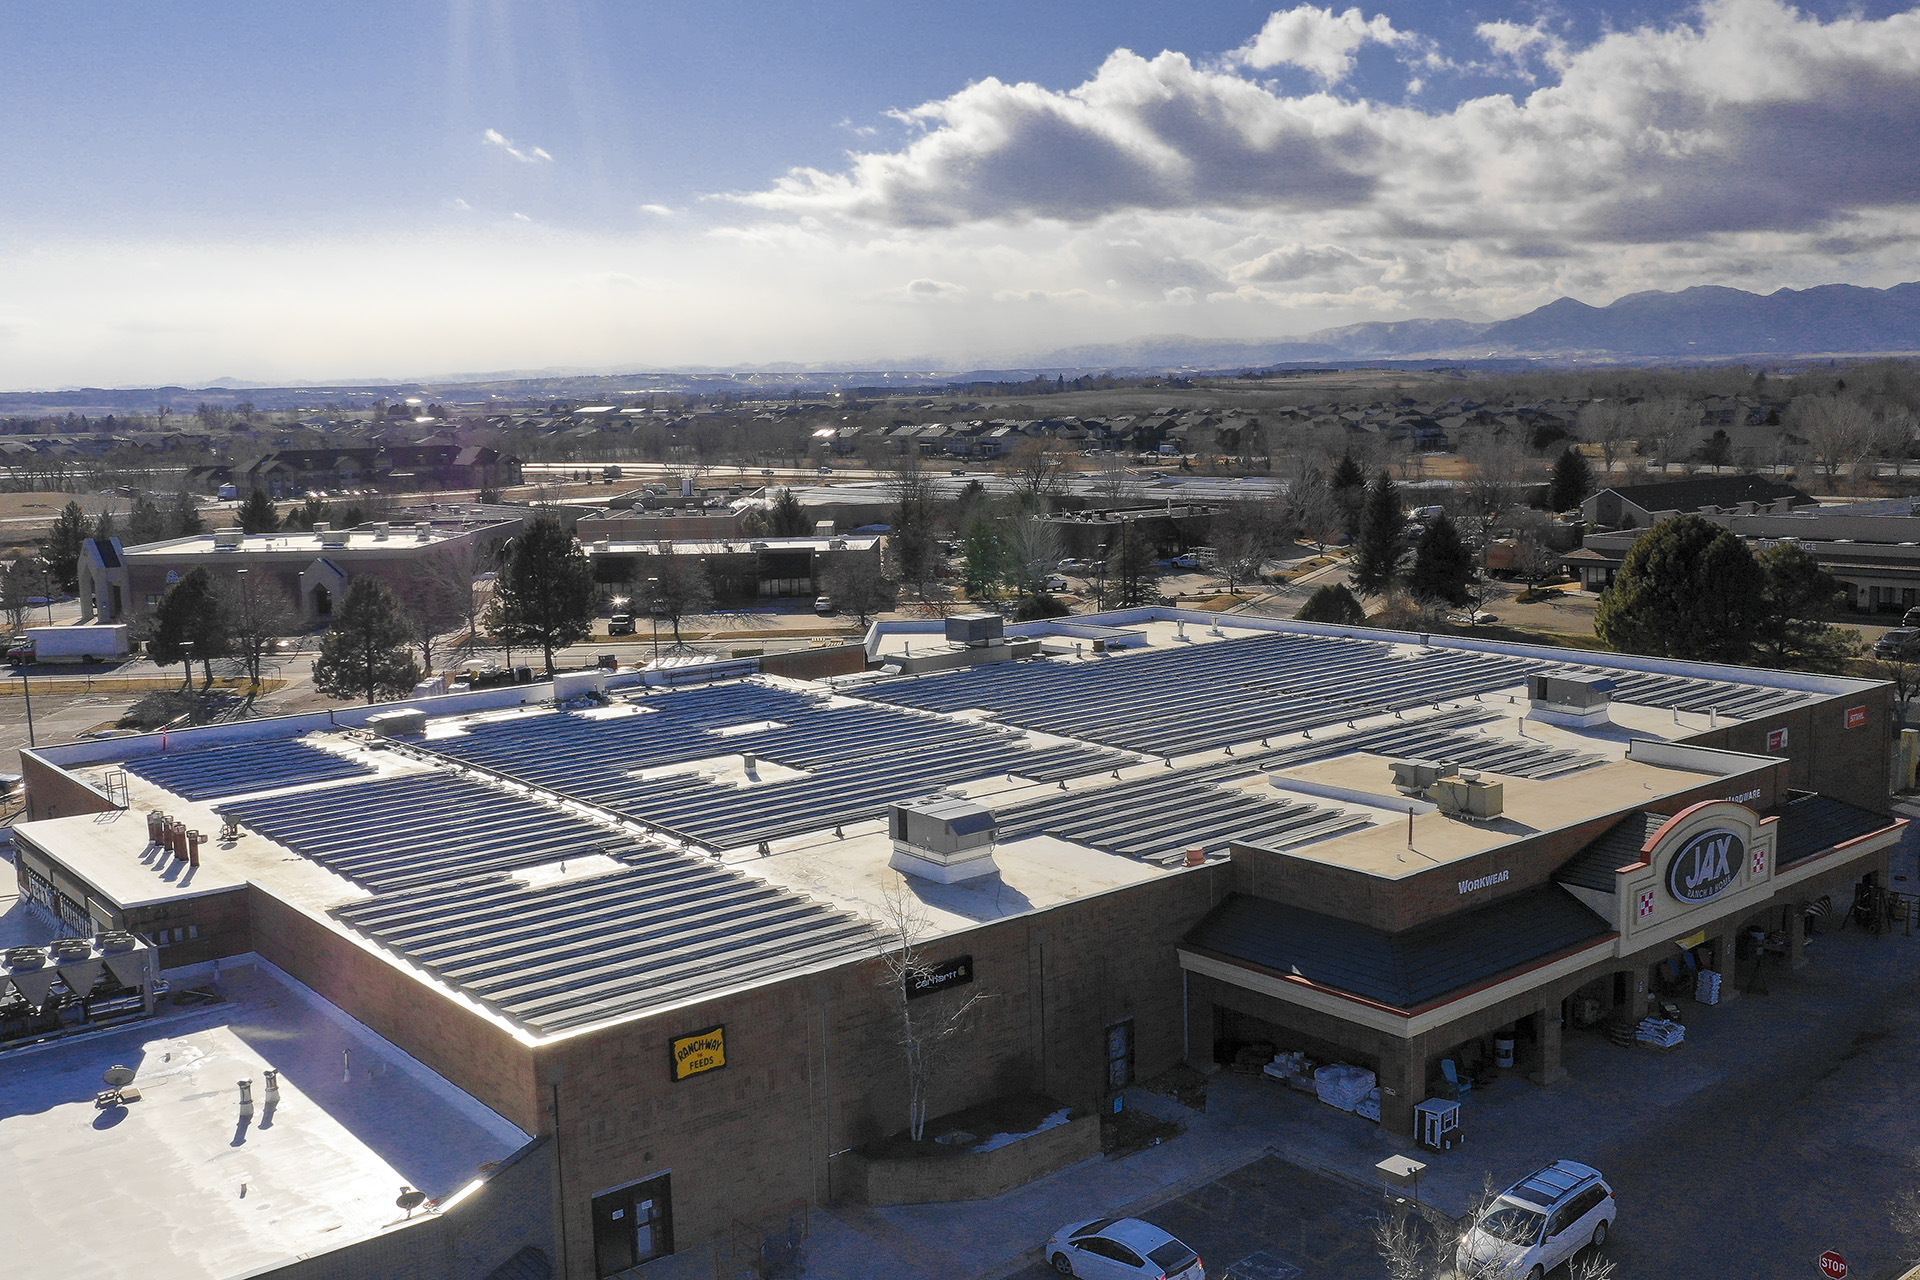 lafayette colorado rooftop solar rocky mountains in background